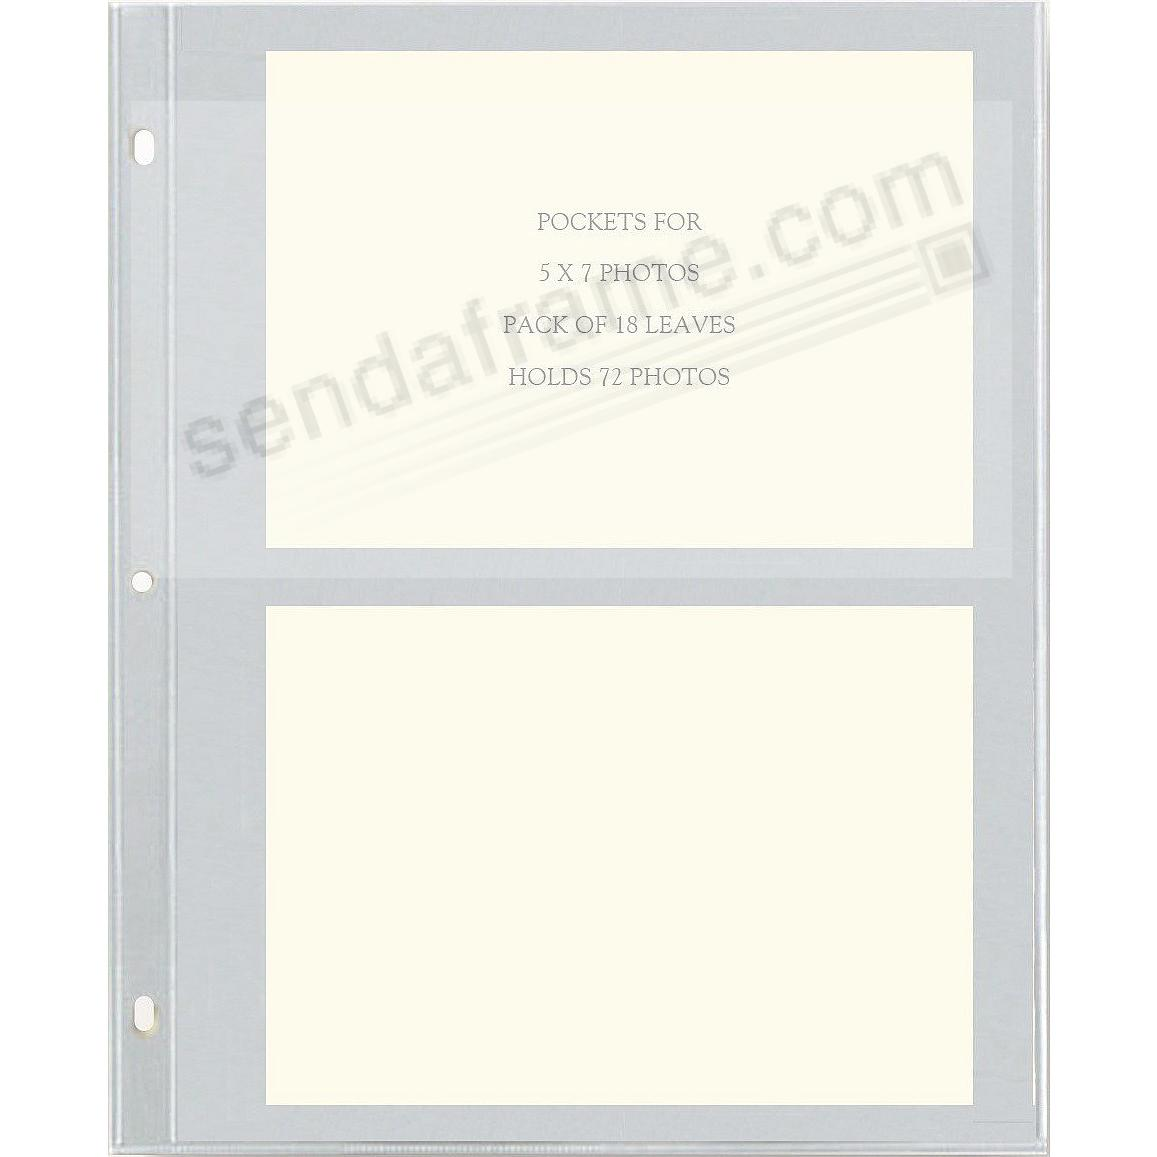 Genuine Post Impression Graphic Image Slip In 5x7 Pocket Refills